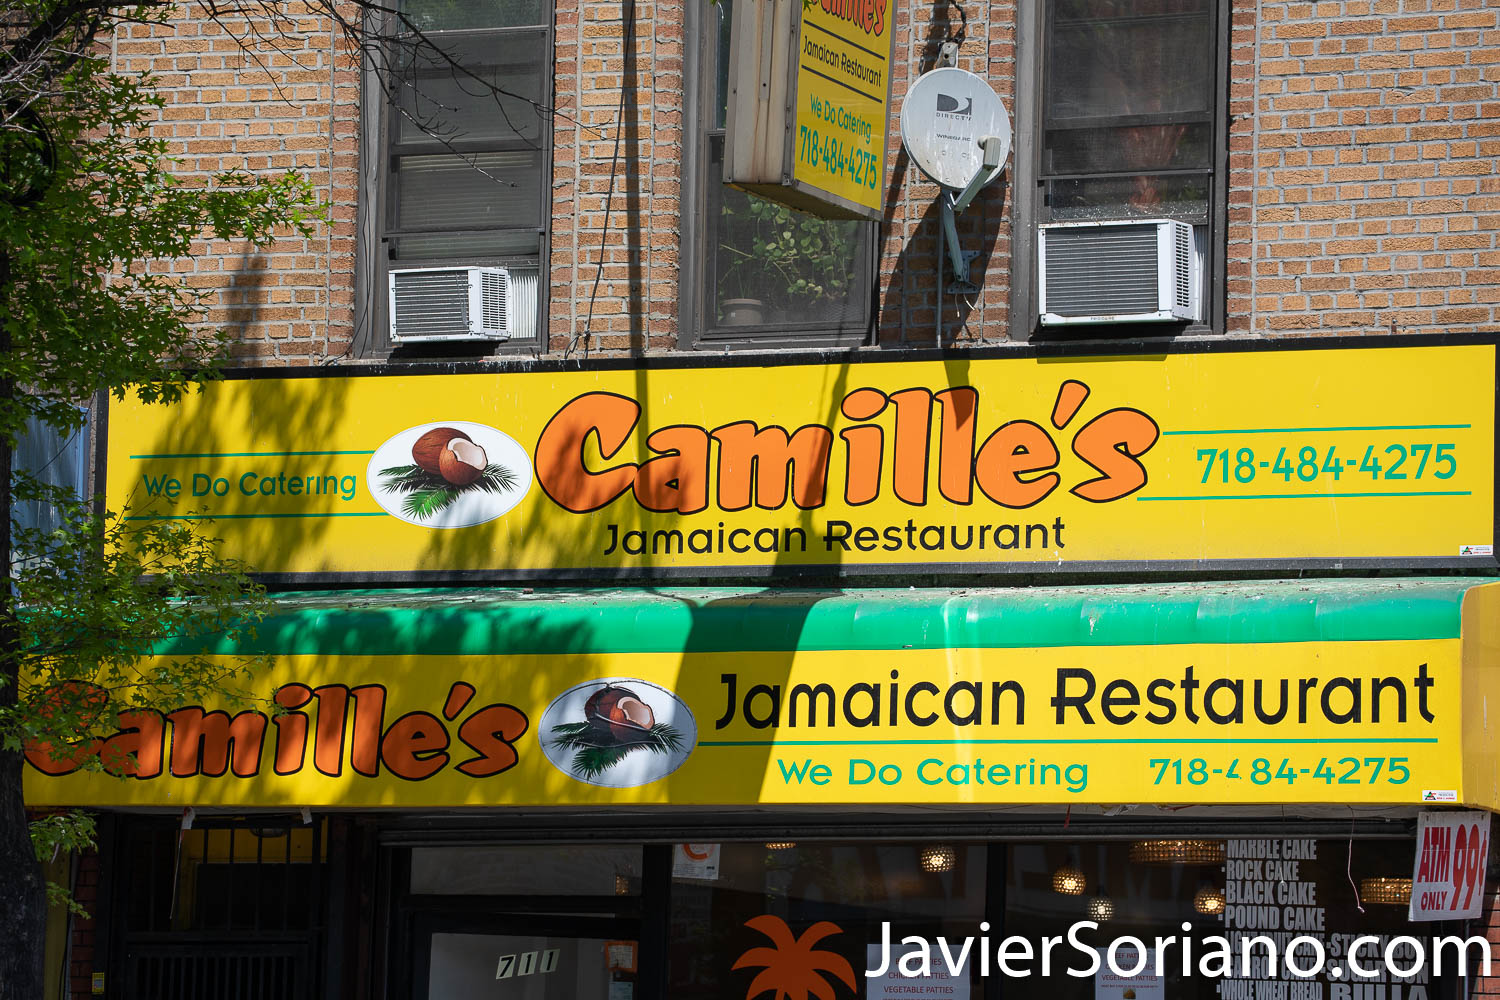 Thursday, May 21, 2020. Brooklyn, New York City - Jamaican restaurant. Camille's. Jueves 21 de mayo de 2020. Brooklyn, ciudad de Nueva York - Restaurante Jamaiquino. Camille's. Photo by Javier Soriano/www.JavierSoriano.com